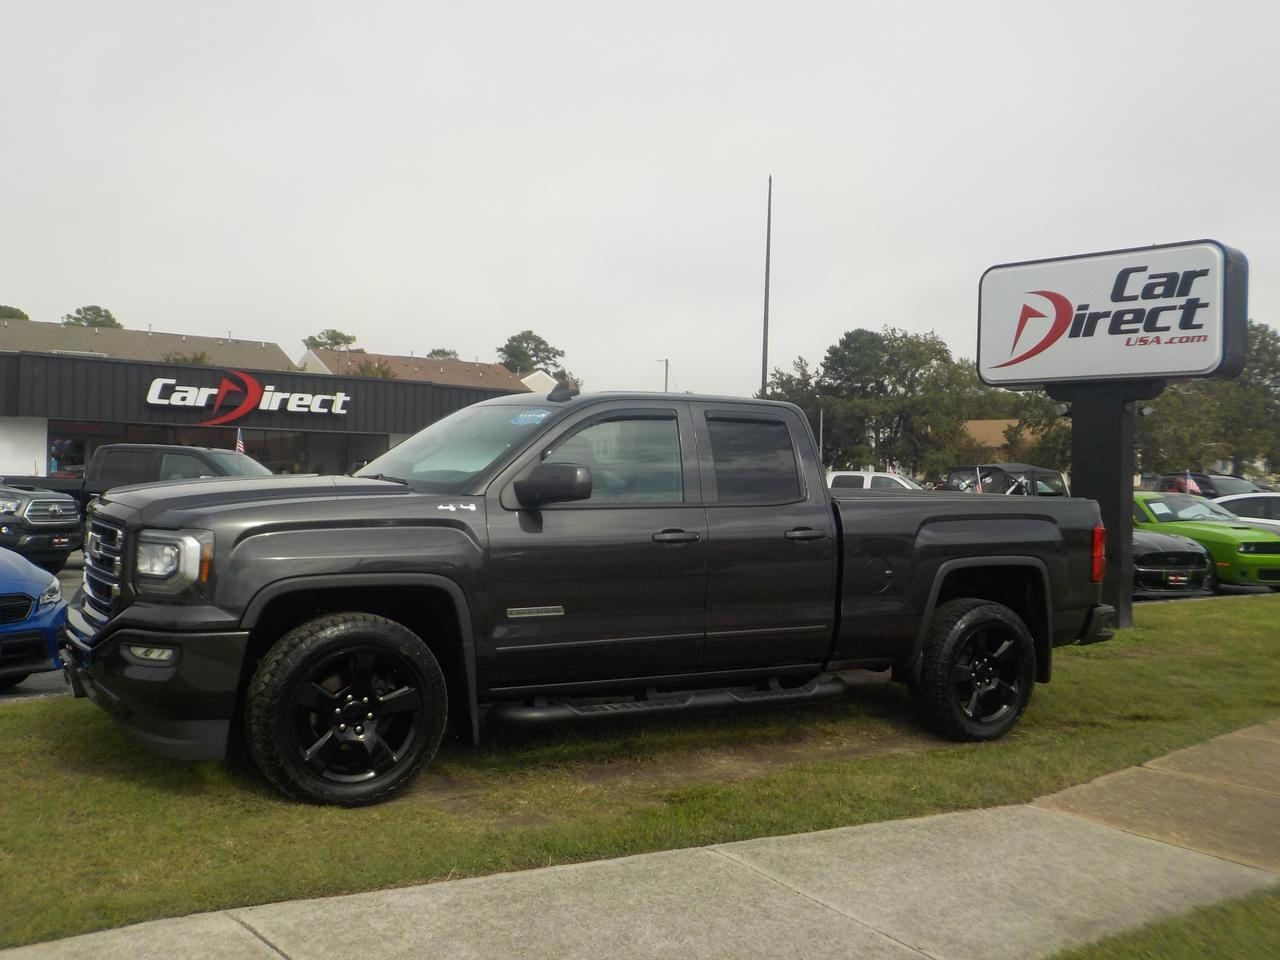 2016 GMC SIERRA 1500 DOUBLE CAB ELEVATION 4X4, ONE OWNER, HARD TONNEAU COVER, RUNNING BOARDS, BLUETOOTH, BACKUP CAM! Virginia Beach VA